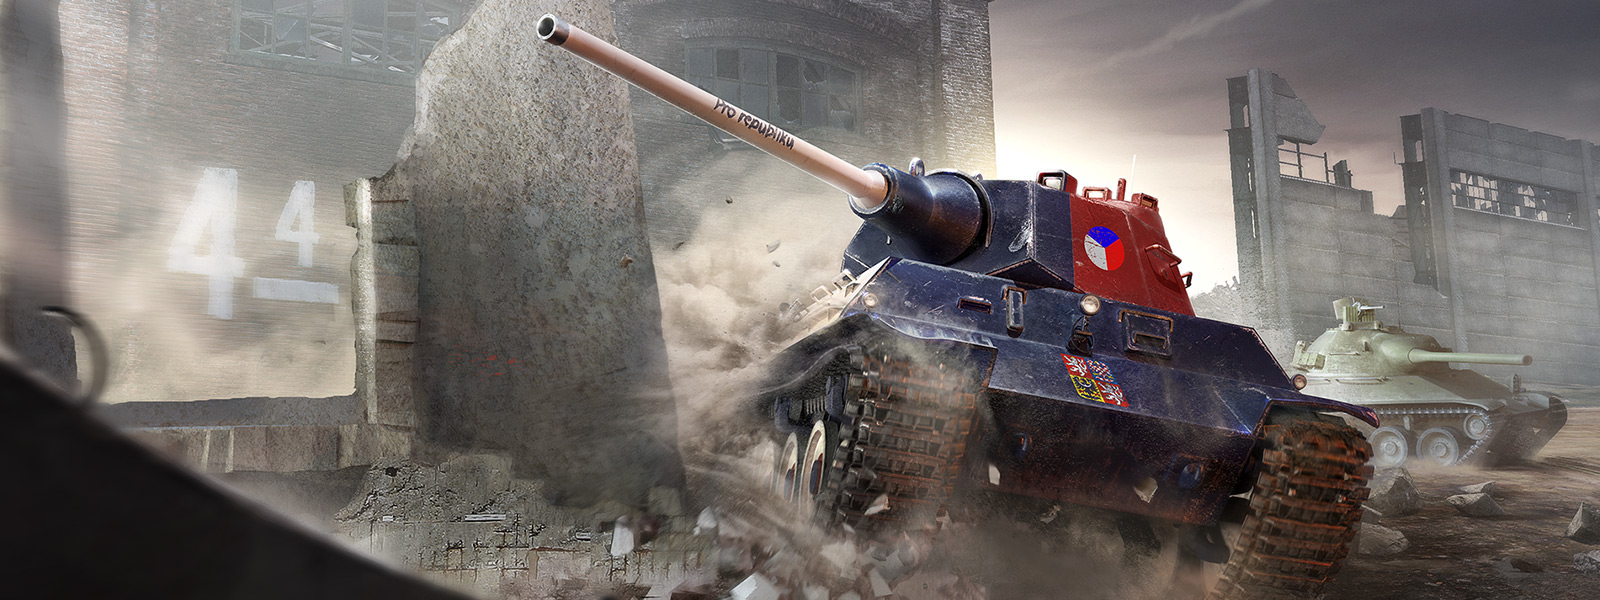 World of Tanks 新國度